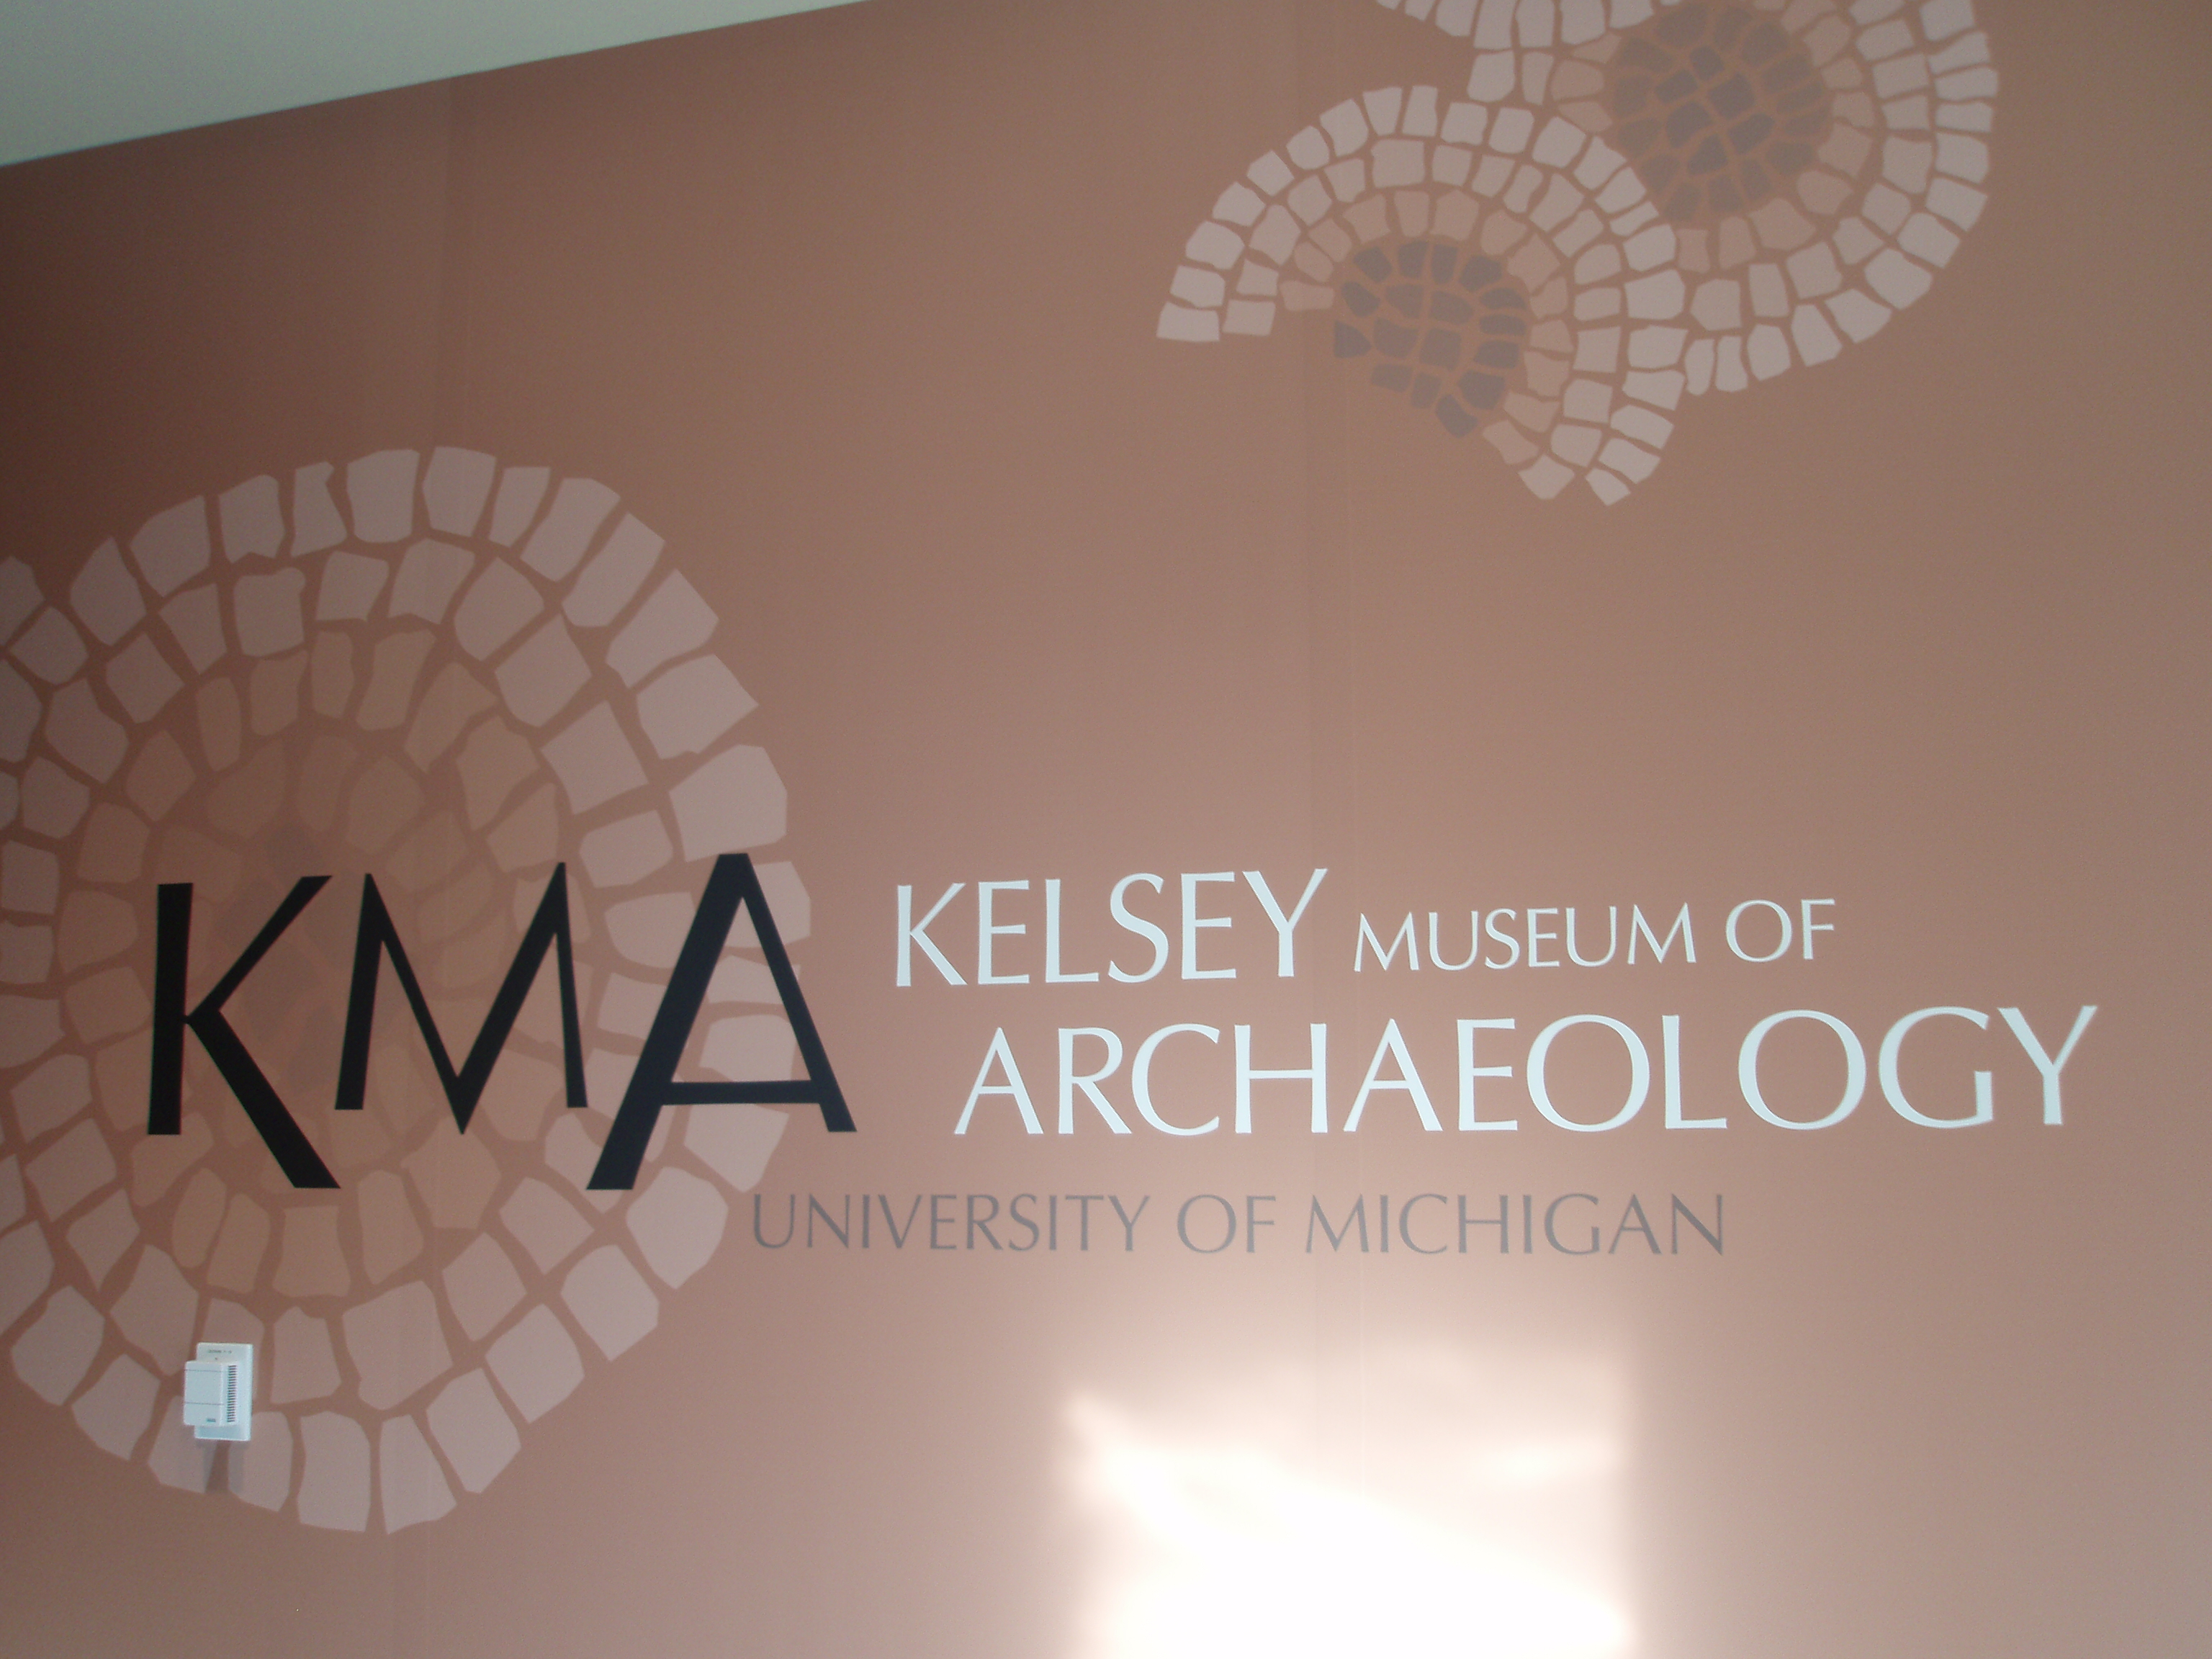 Kelsey Museum of Archeology